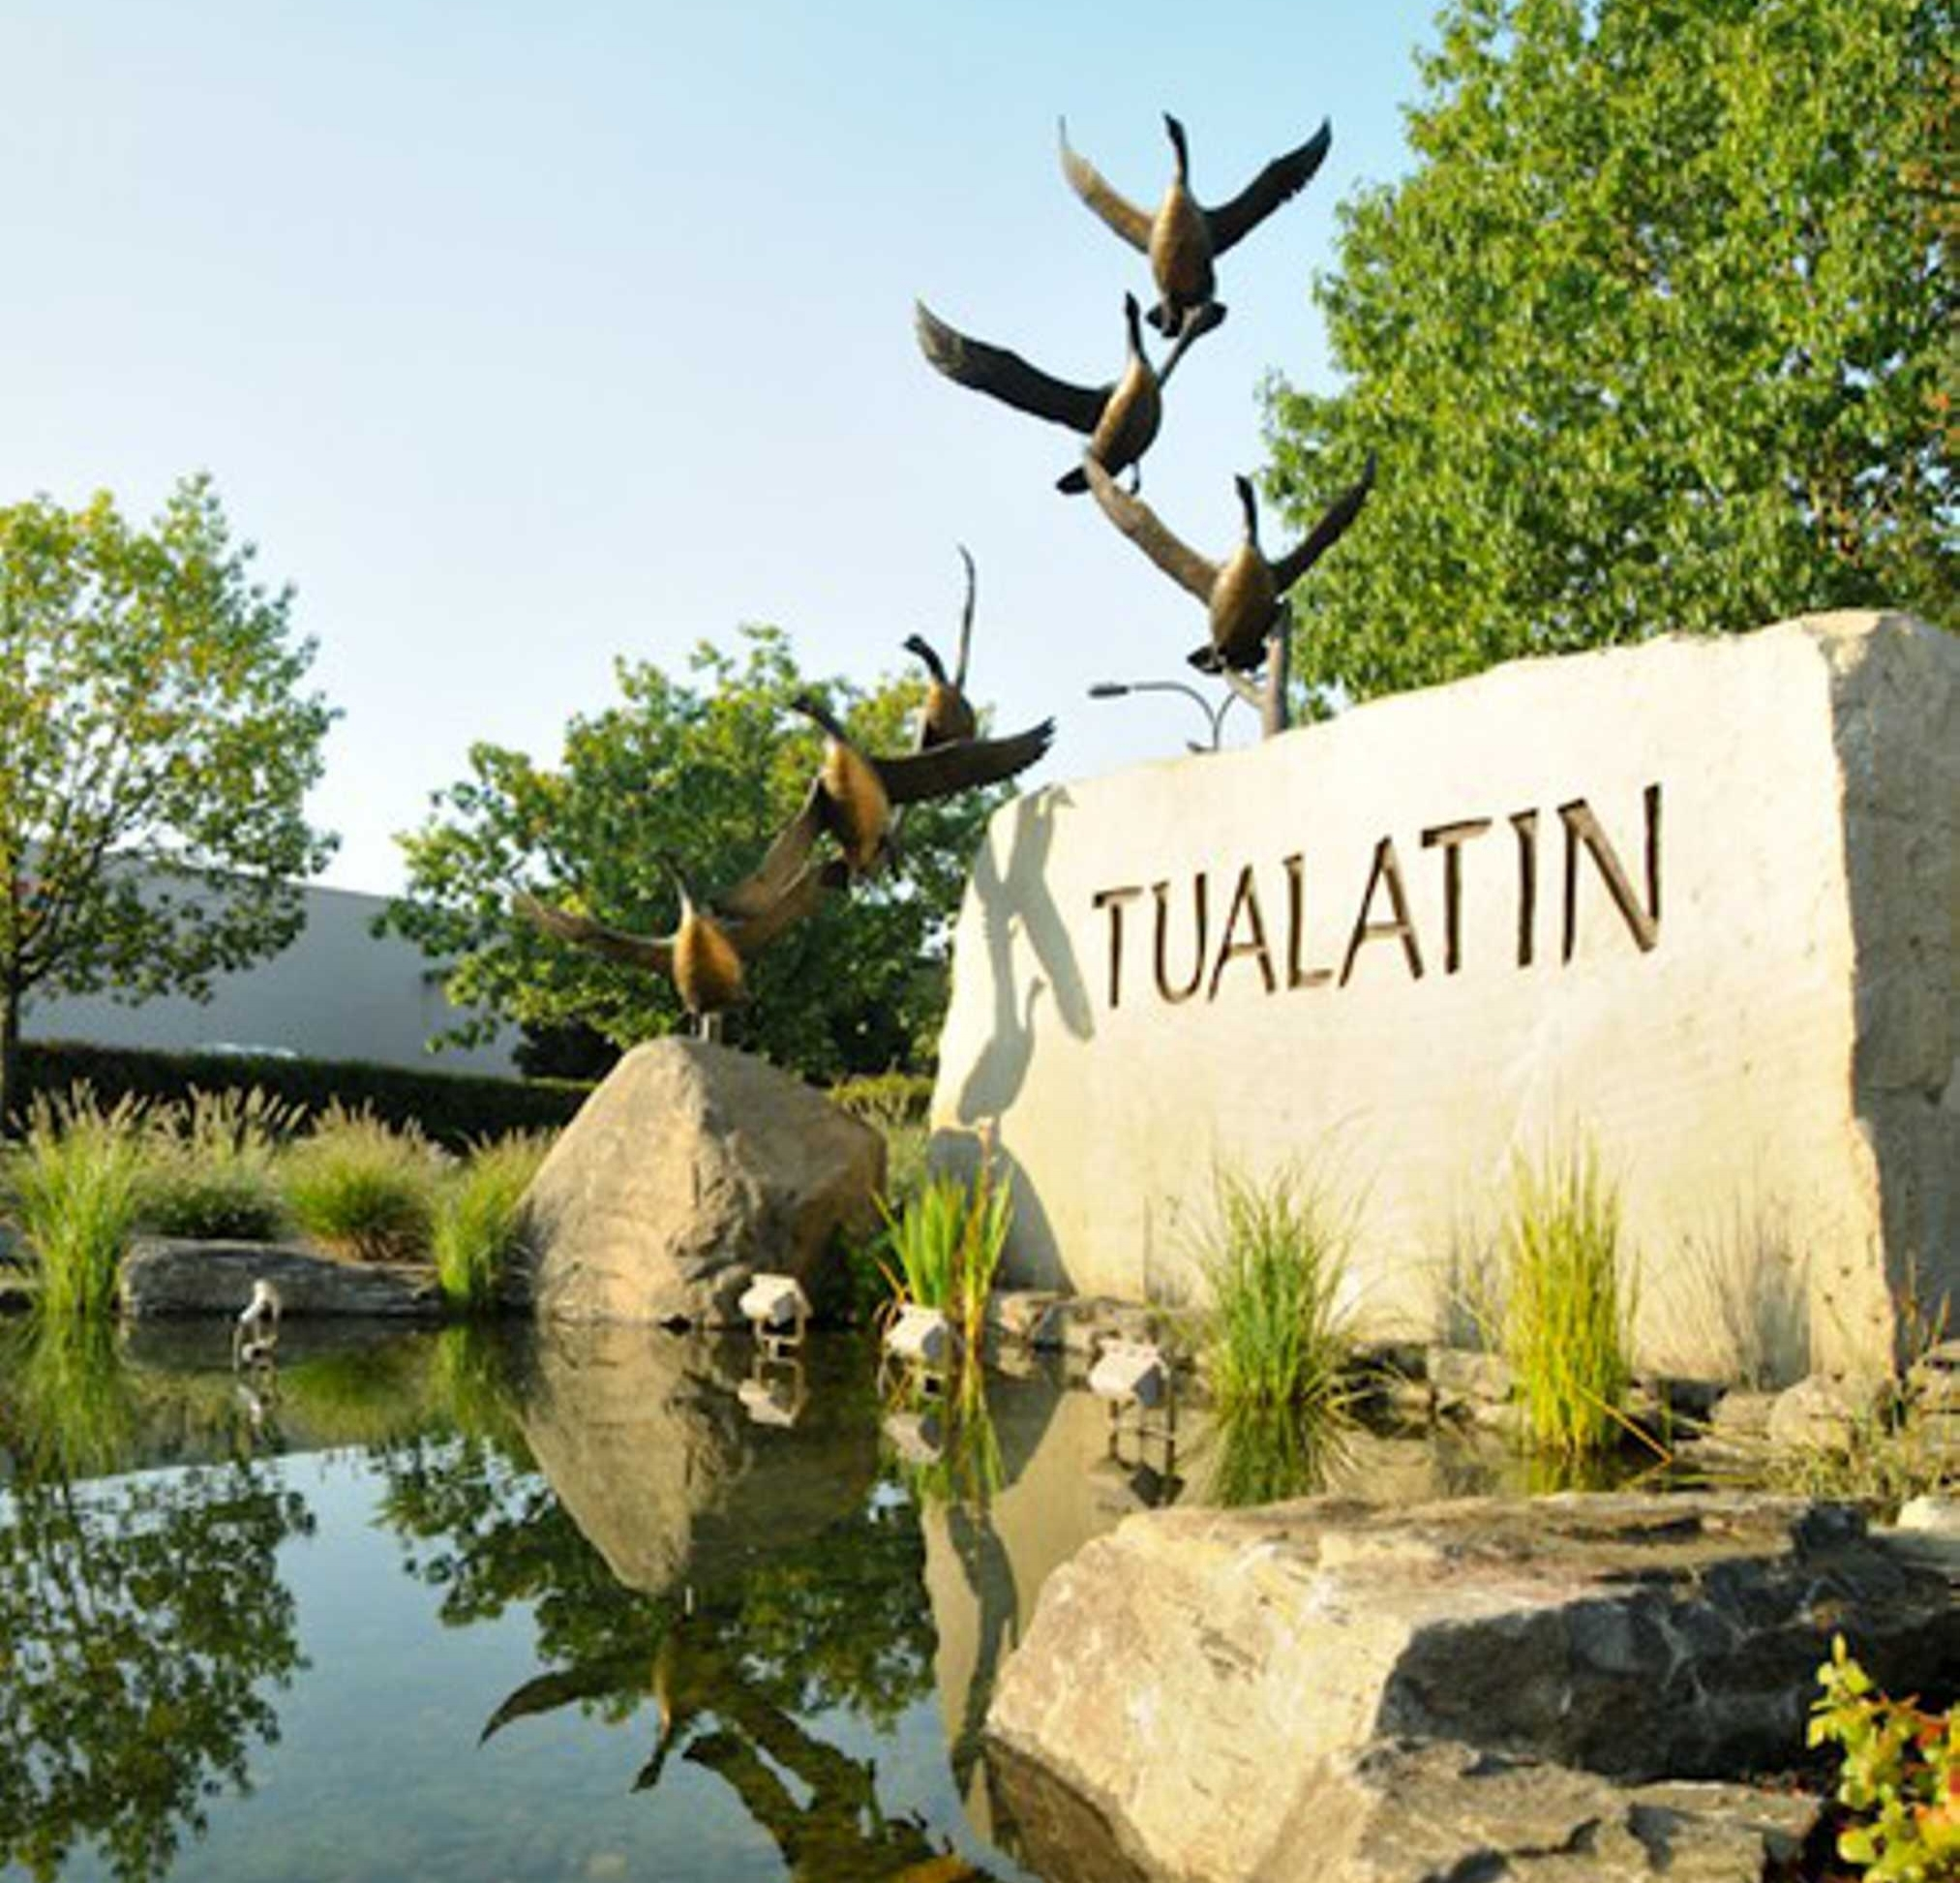 Case Study |City of Tualatin - Photos of the City of Tualatin Art Entry Monument show the process from schematic to completion. The hand rendered sketch designed by Janelle Baglien won Studio Art Direct the award to create this $375K art installation. Our work included a wetland pond, 20,000 pound carved rock with footings, and an 18' high custom commissioned bronze sculpture by R. Caswell. Studio Art Direct coordinated three artists, civil and structural engineers, contractors, and the city commission to a successful installation that culminated in a daring one-night street closure. The installation speaks to the city's wetlands and shared leadership as symbolized by the geese.Awarded First Place in the Daily Journal of Commerce DMWESB TopProjects CompetitionFeatured in the Oregonian for design excellenceView the making of video